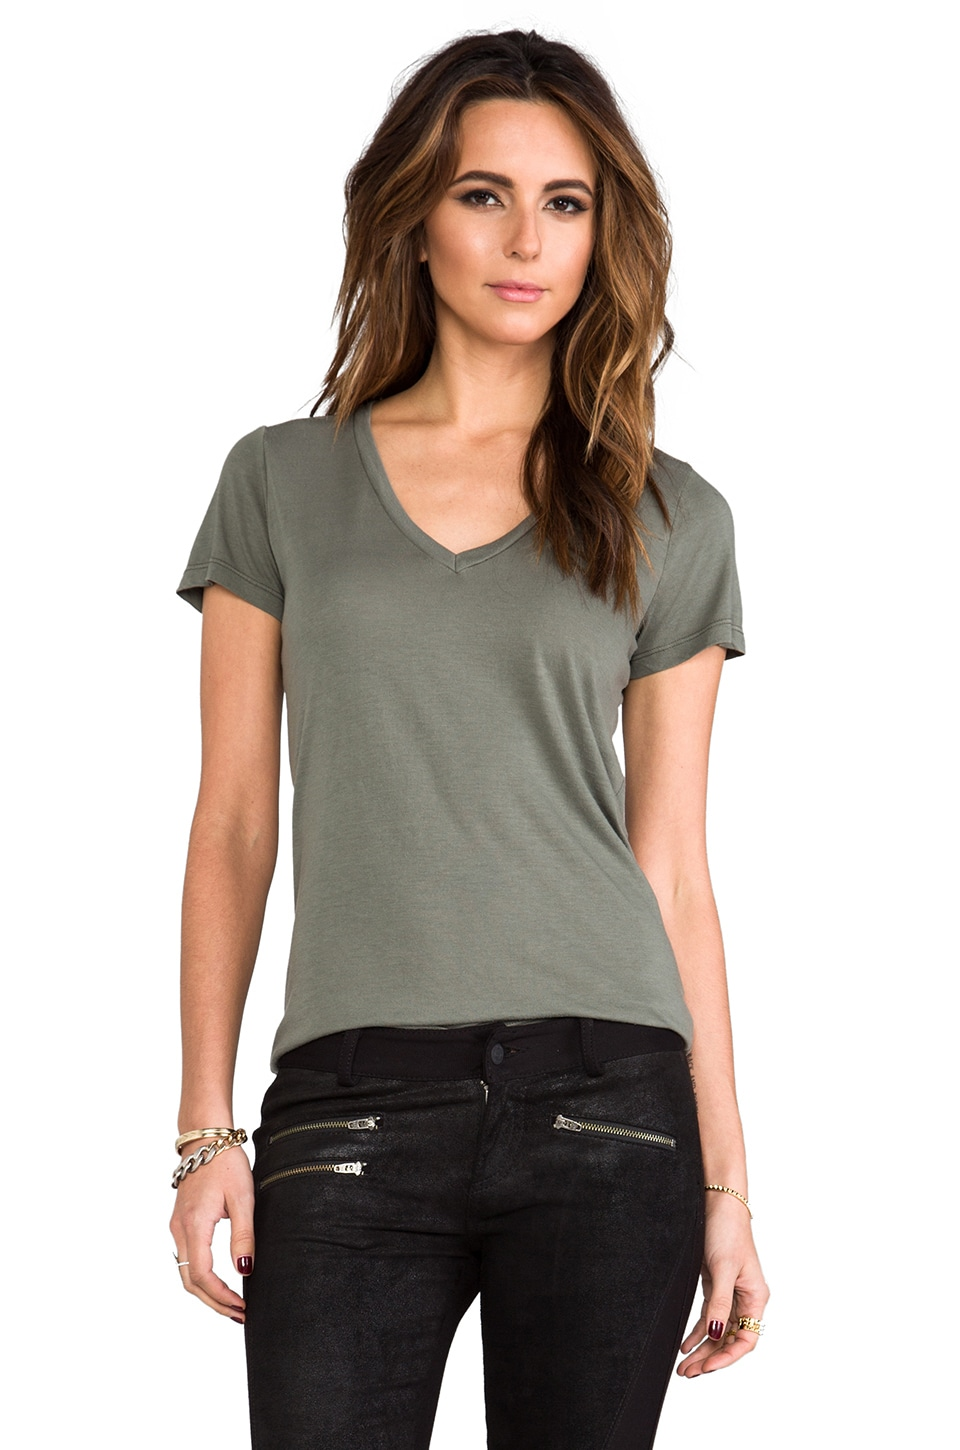 Splendid Very Light Jersey Tee in Army